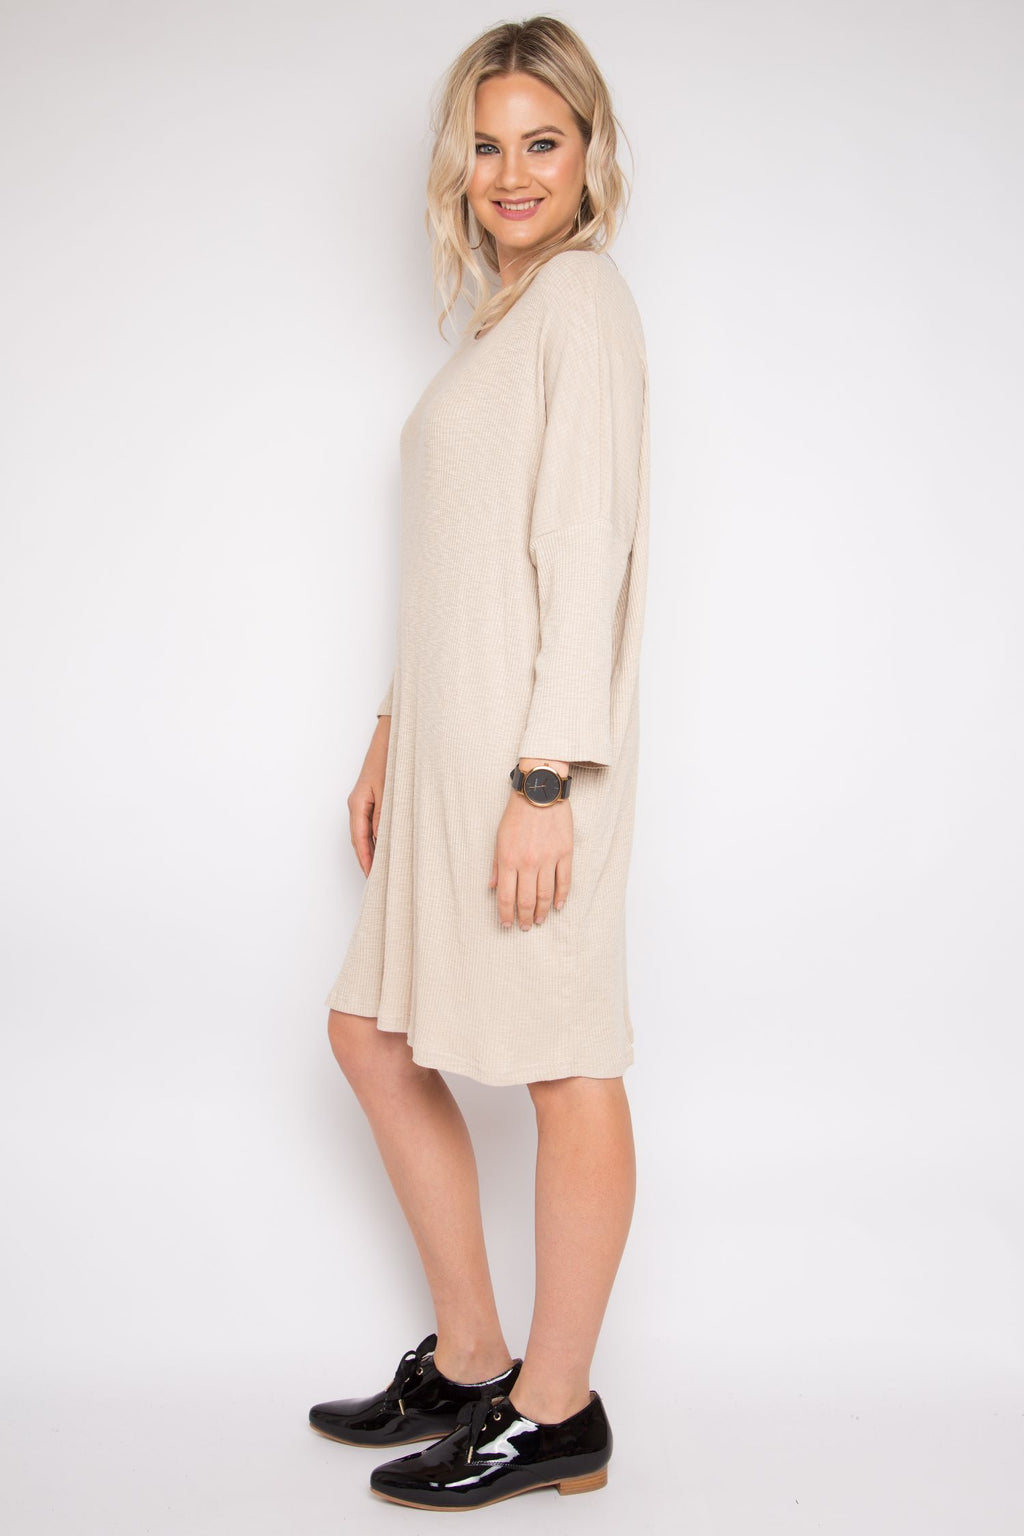 Long Sleeve A Nice Dress in Vanilla Knit